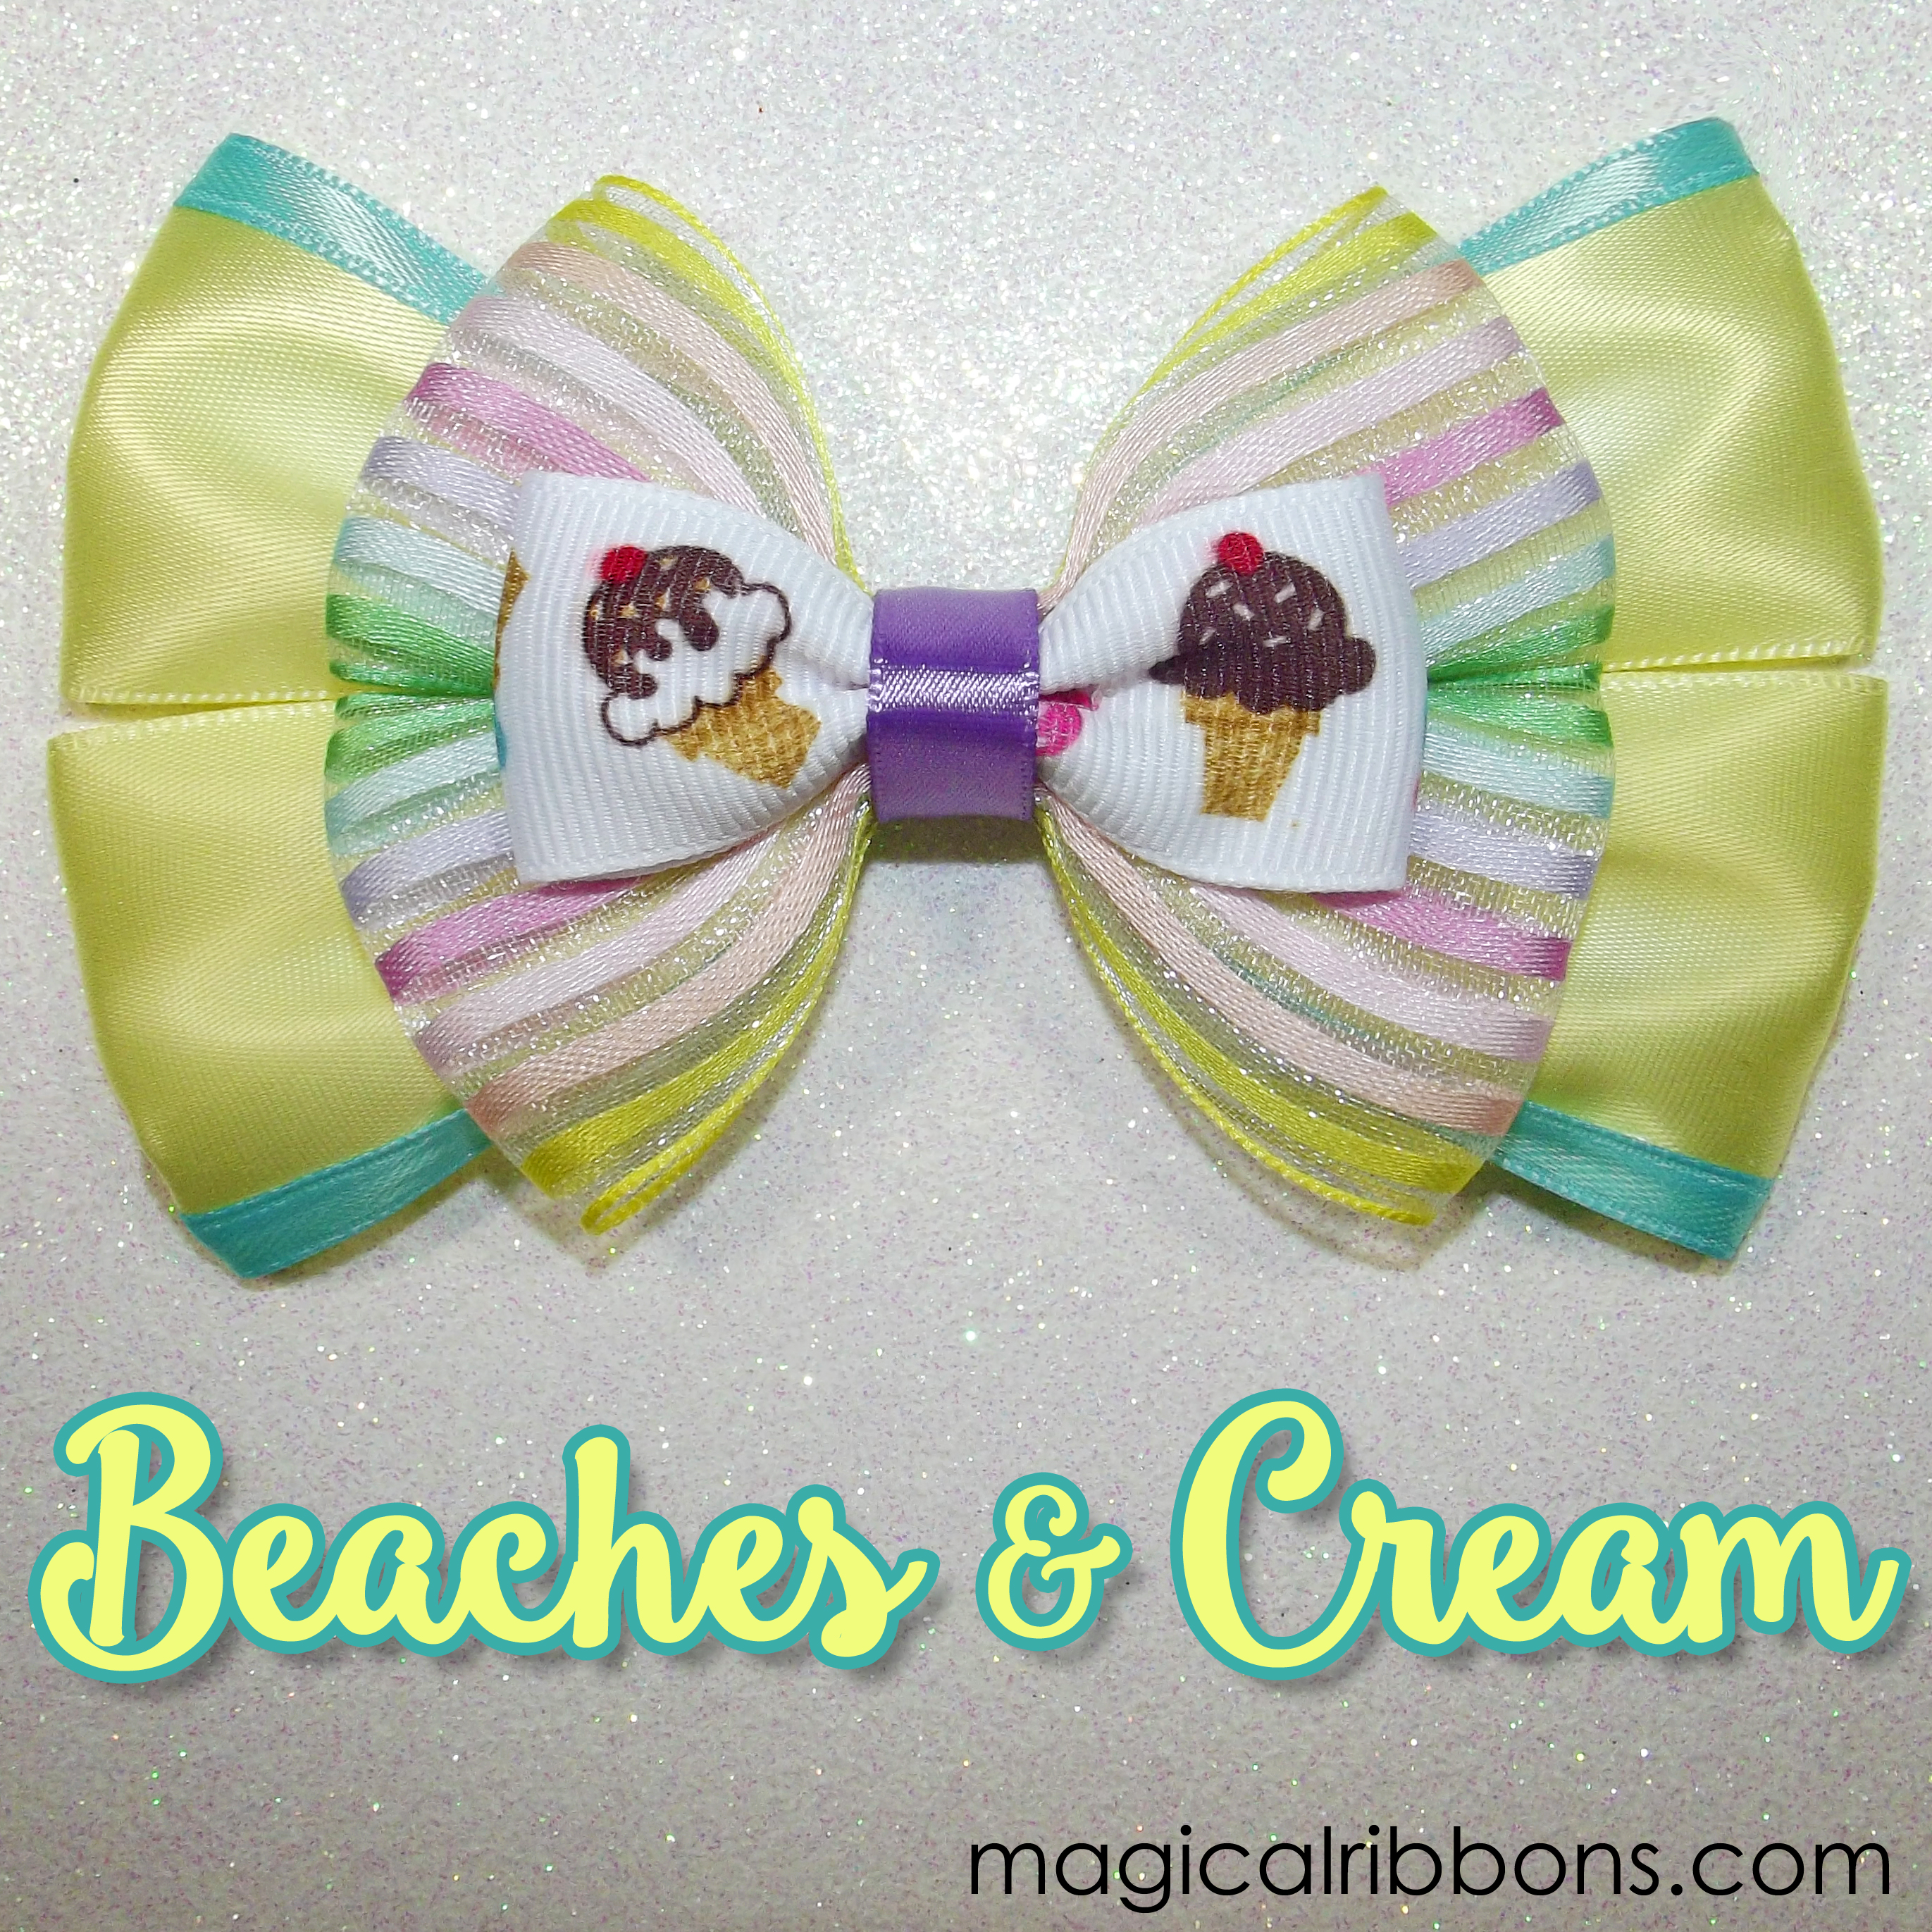 Beaches and Cream Bow